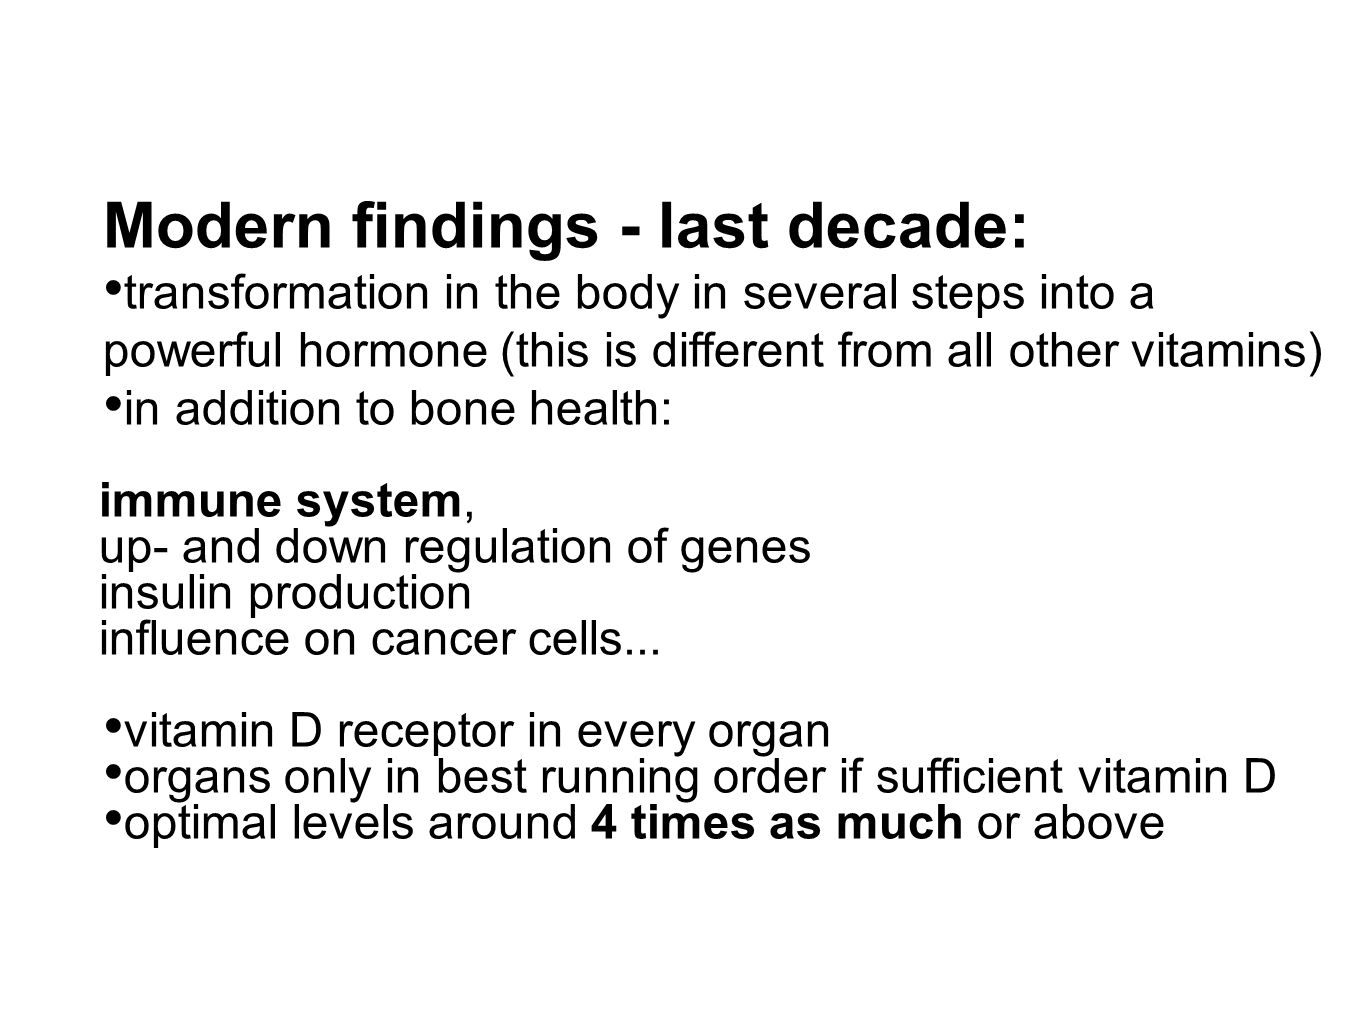 Modern findings - last decade: transformation in the body in several steps into a powerful hormone (this is different from all other vitamins) in addition to bone health: immune system, up- and down regulation of genes insulin production influence on cancer cells...